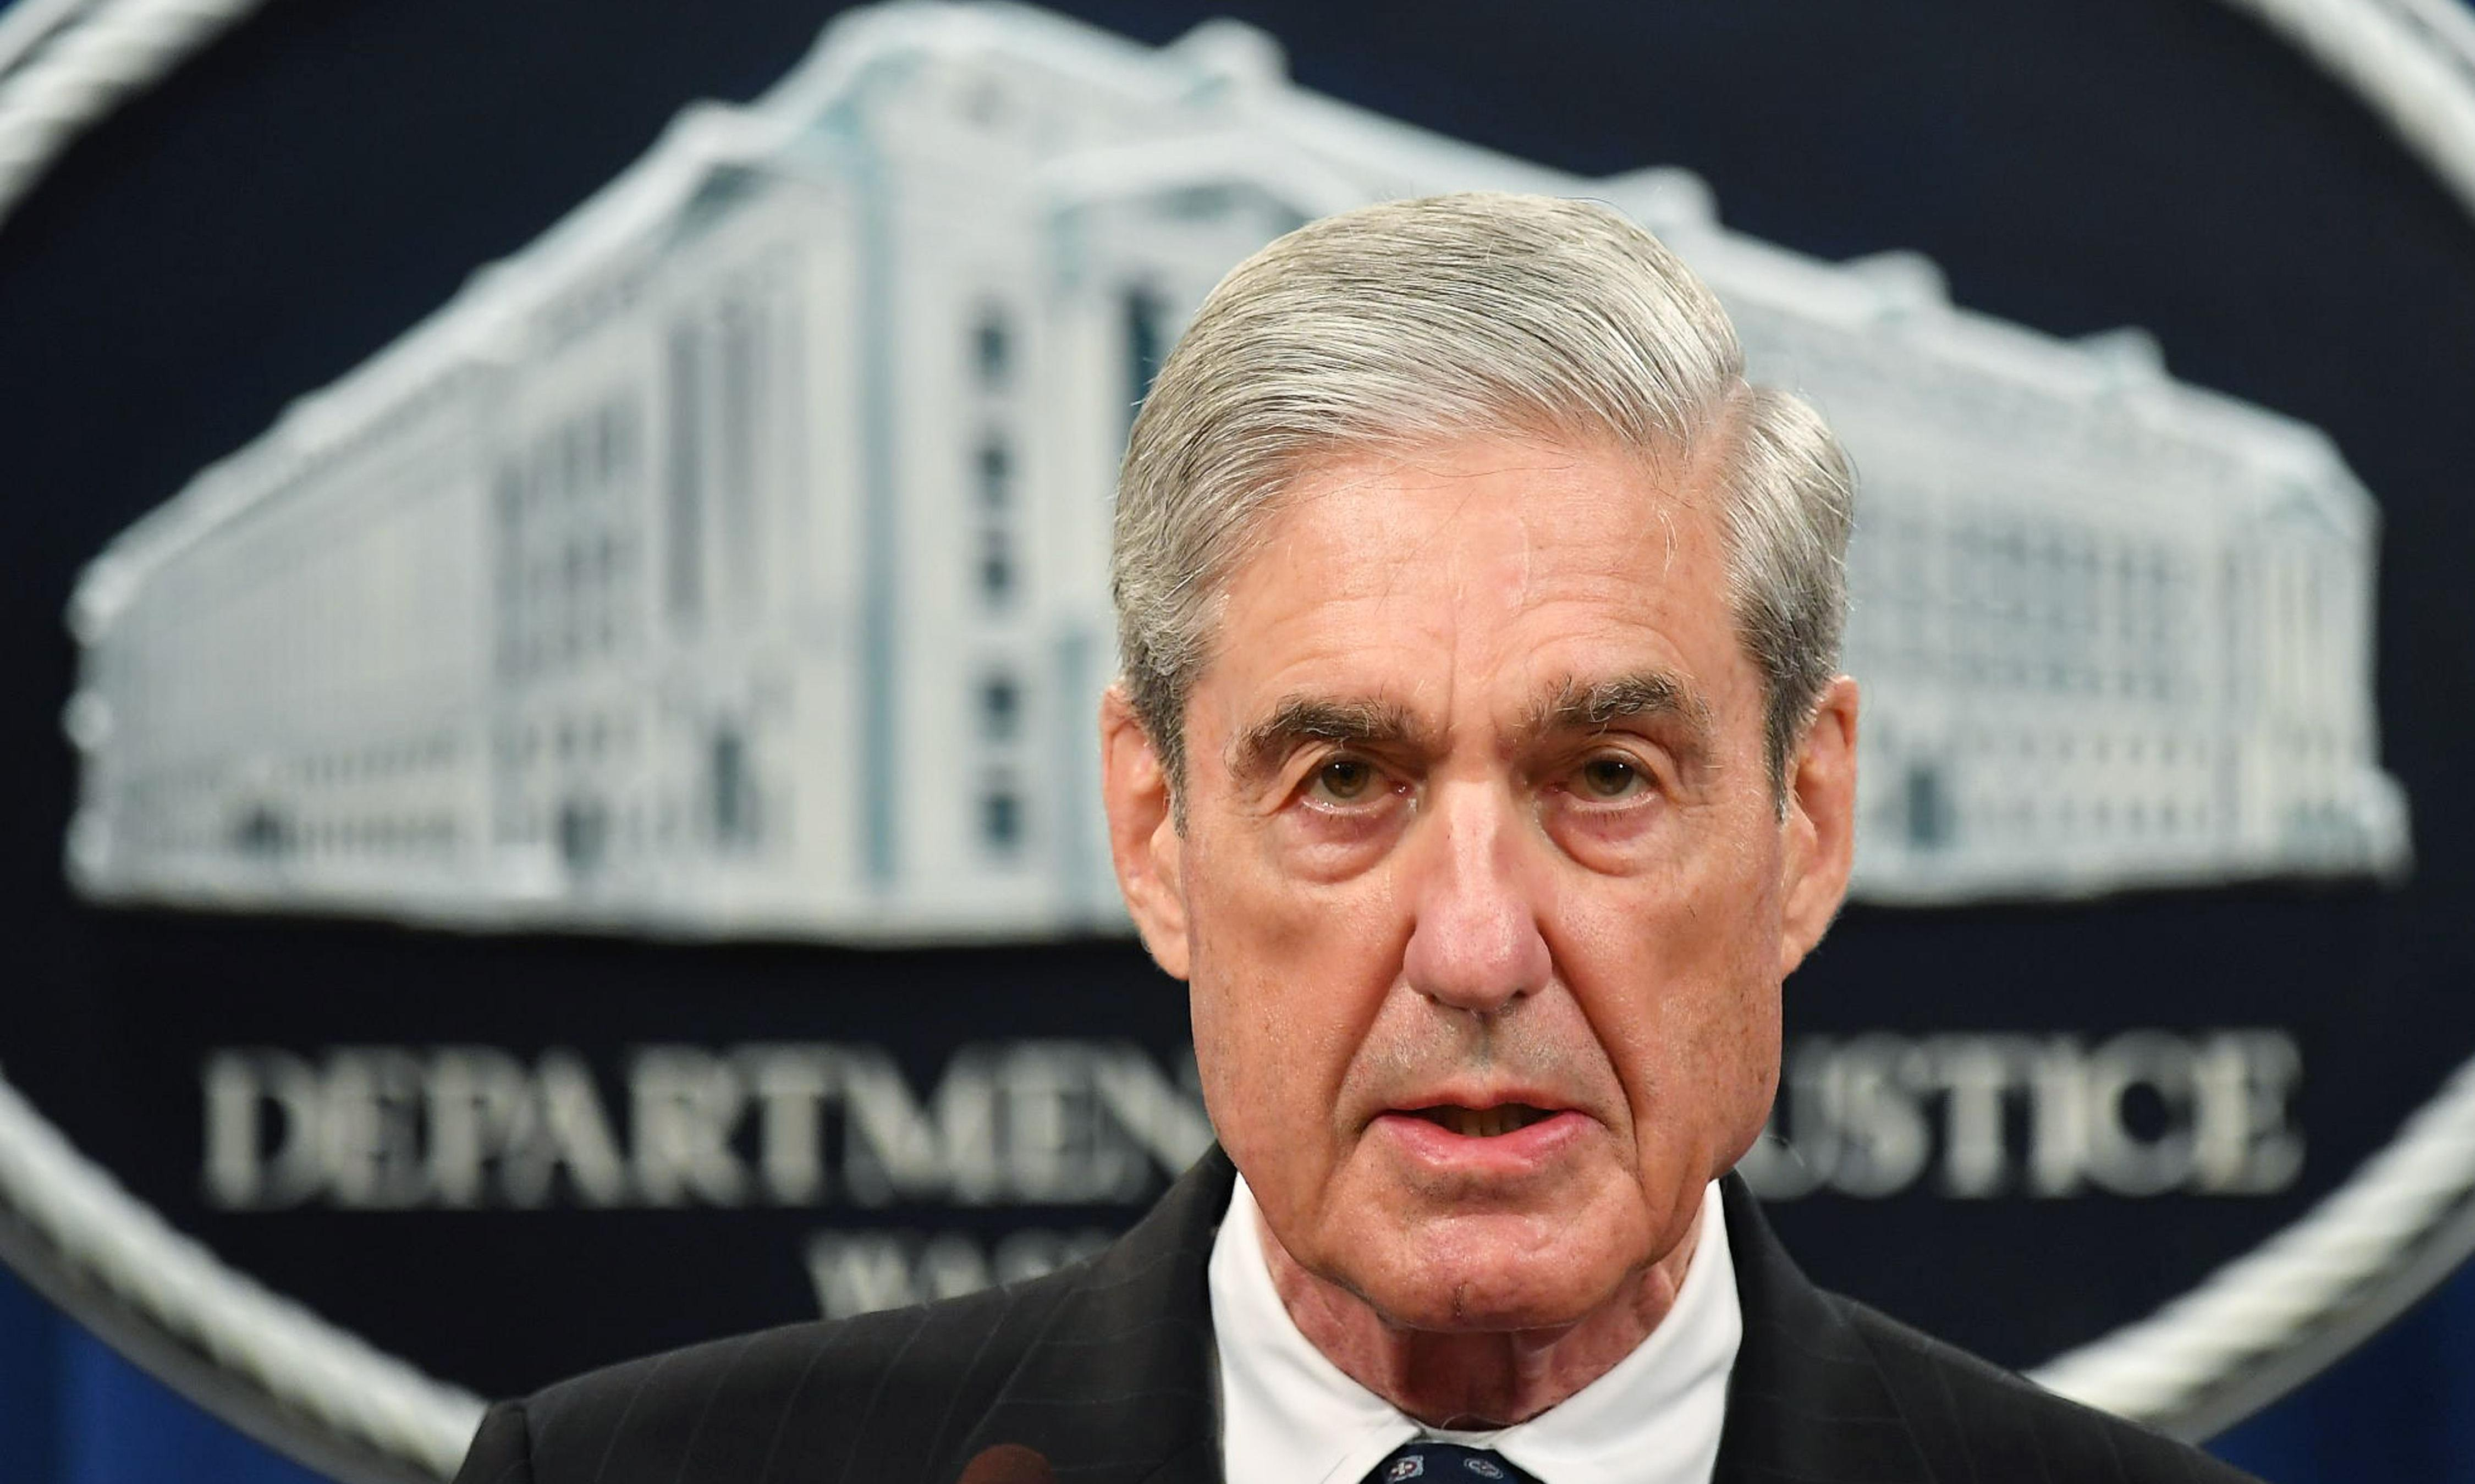 Special counsel Robert Mueller's testimony postponed by one week